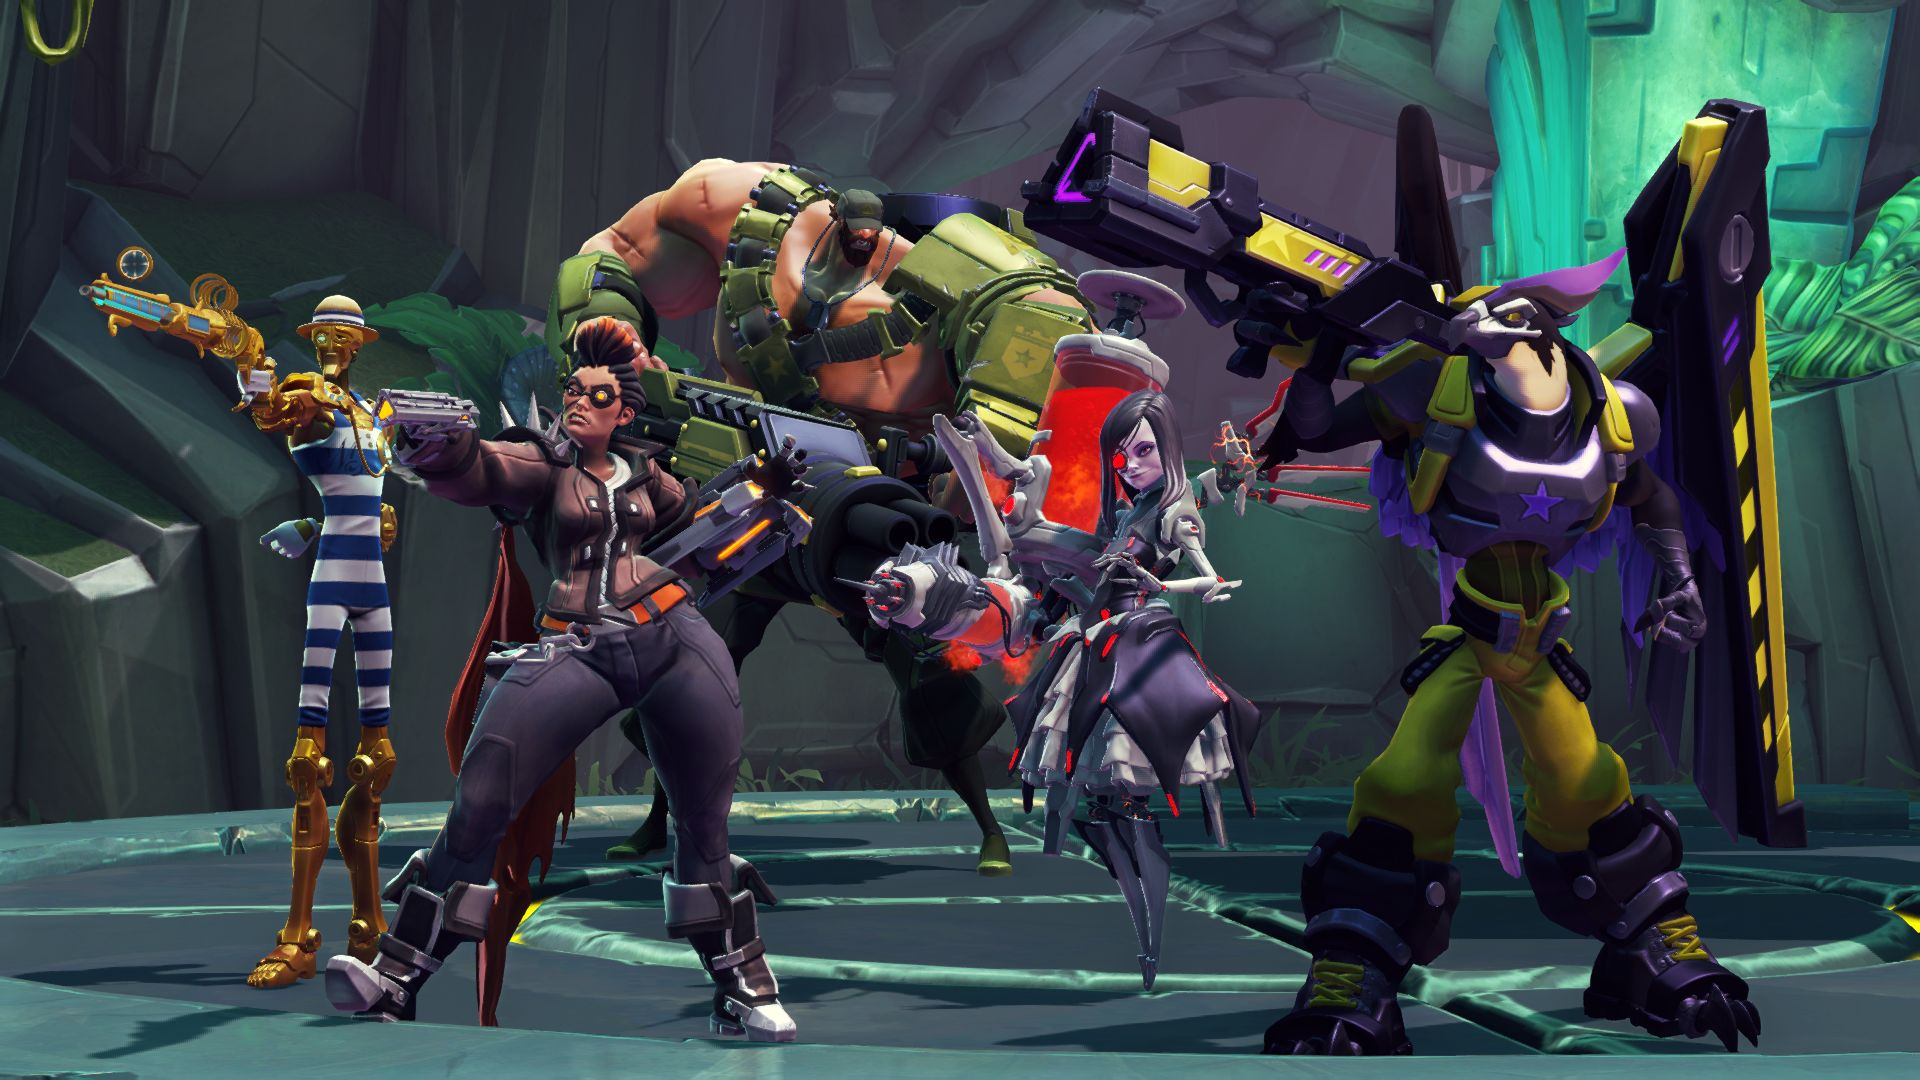 2KGMKT_BATTLEBORN_FREETRIAL_03_Group-Pose_05_1920x1080